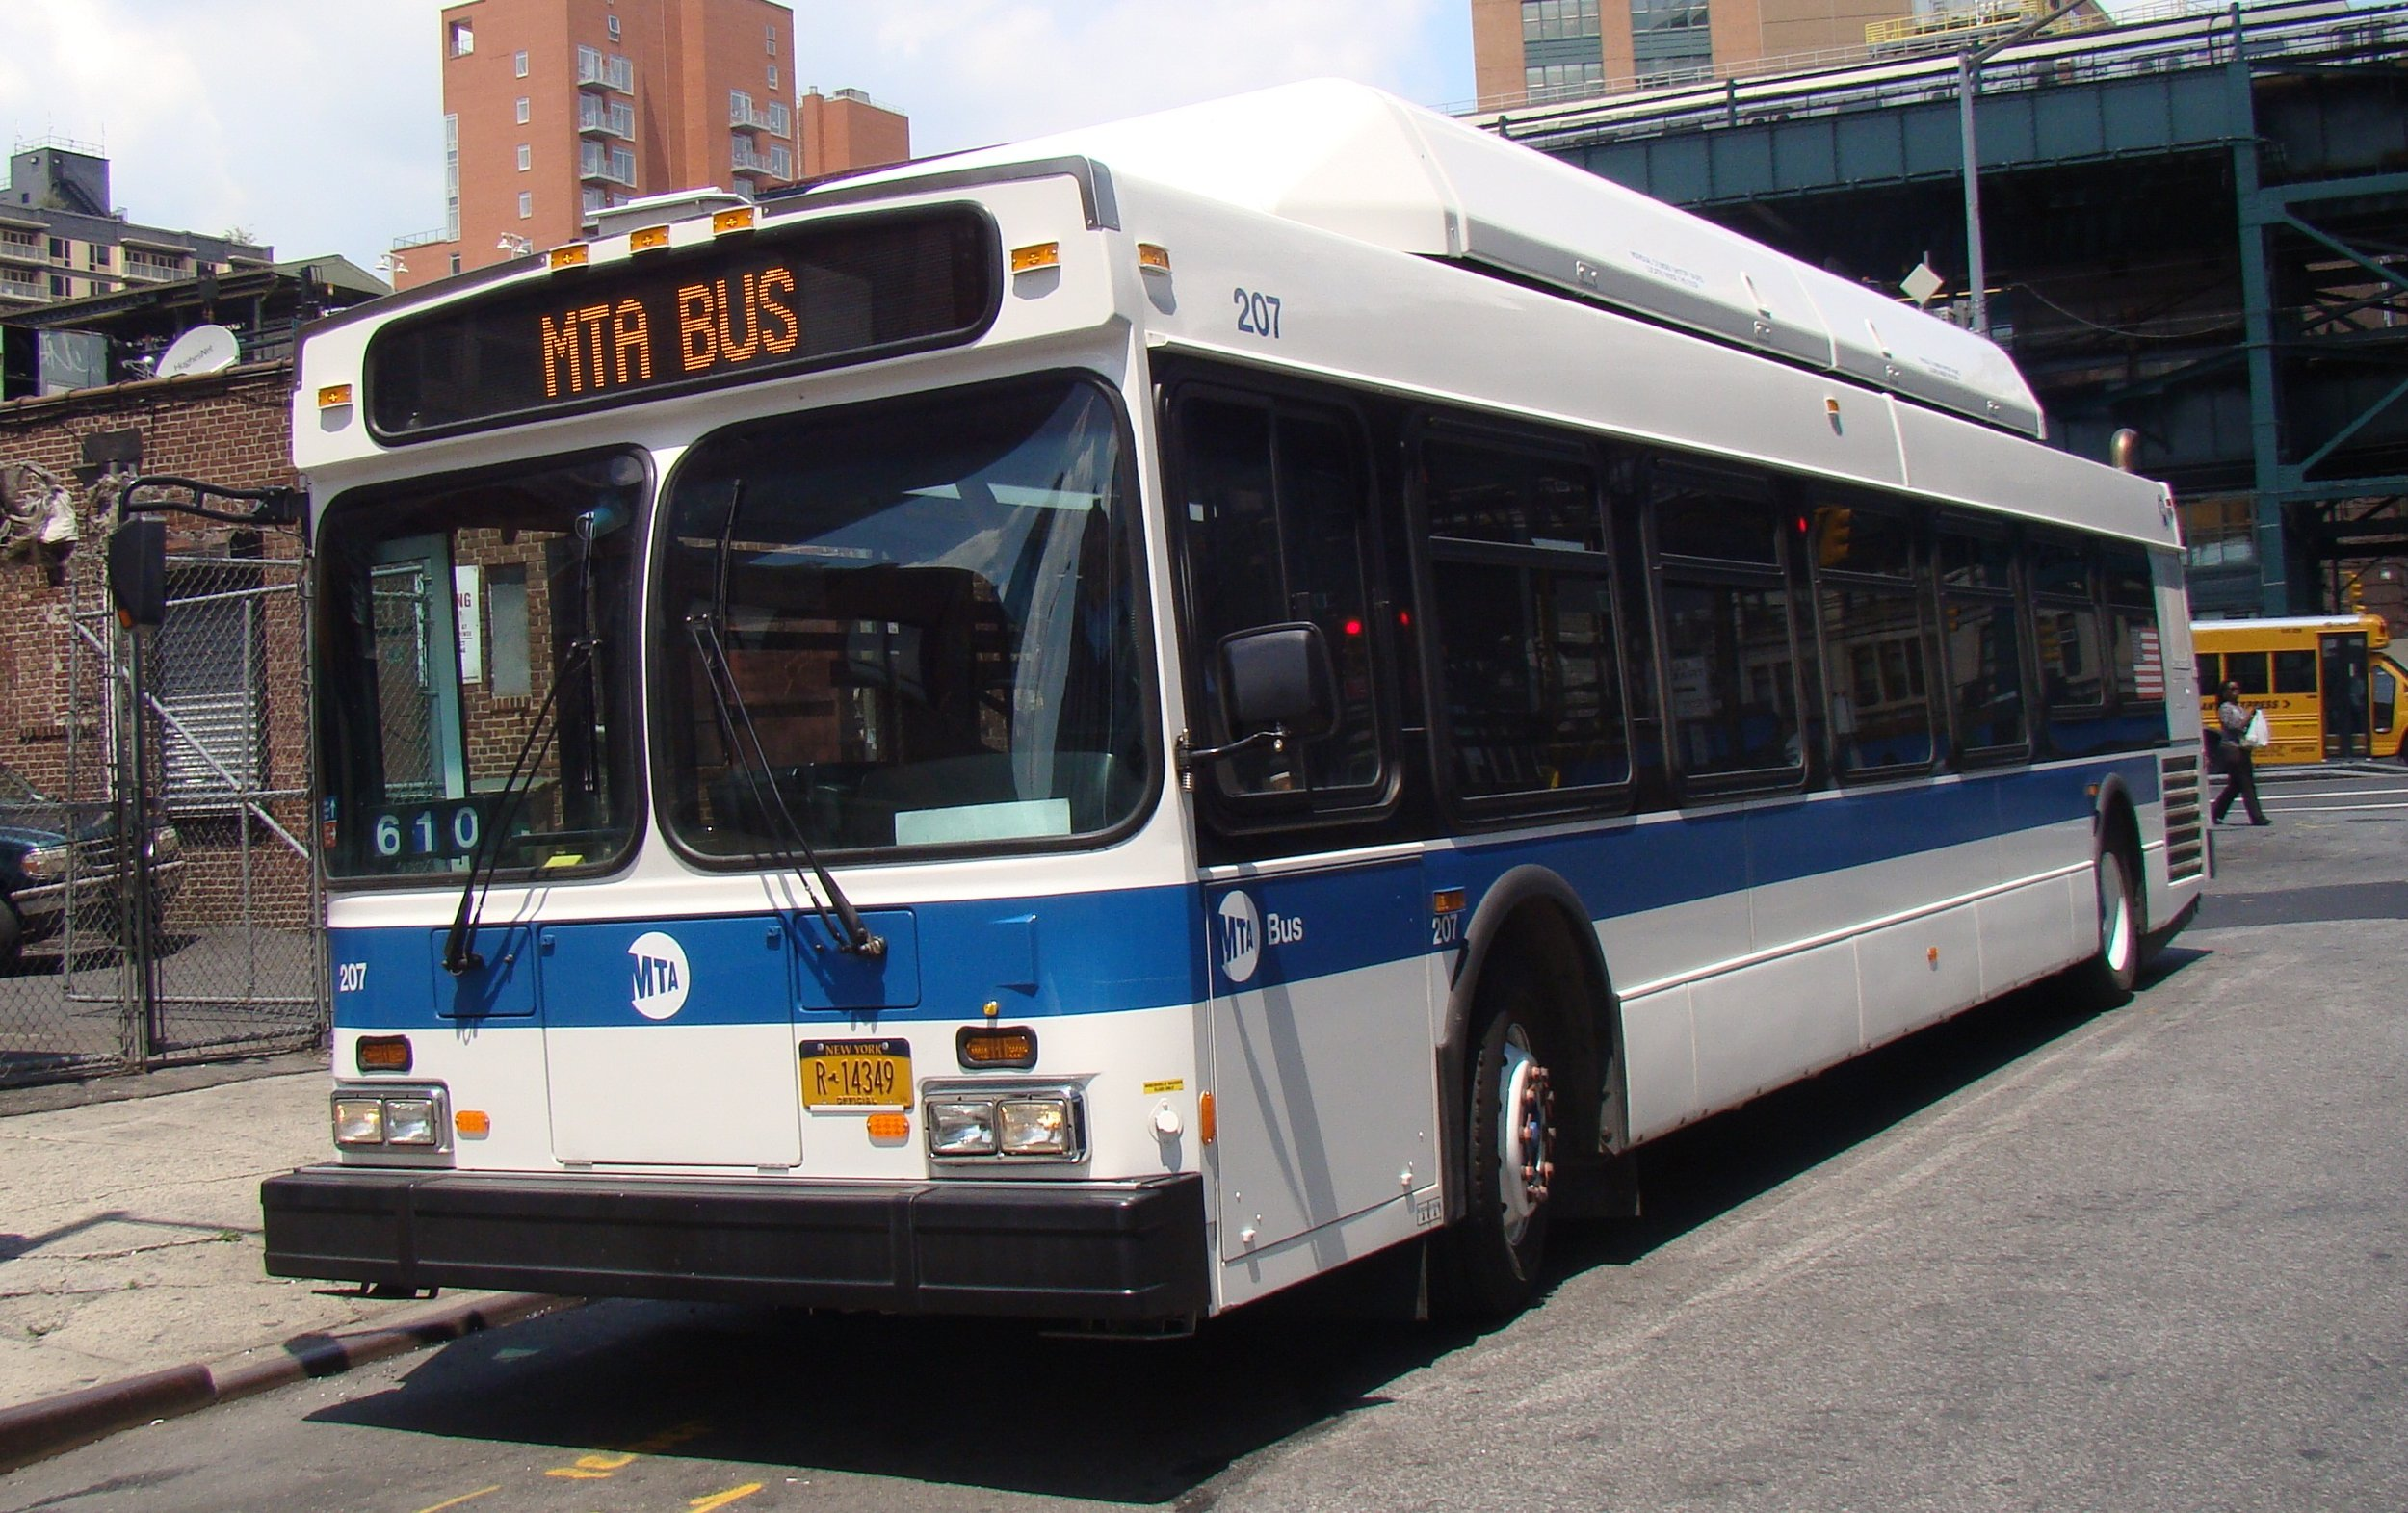 Who knows how slowly this MTA bus will chug along its route. Photo courtesy of Chris Torres/Wikimedia Commons.